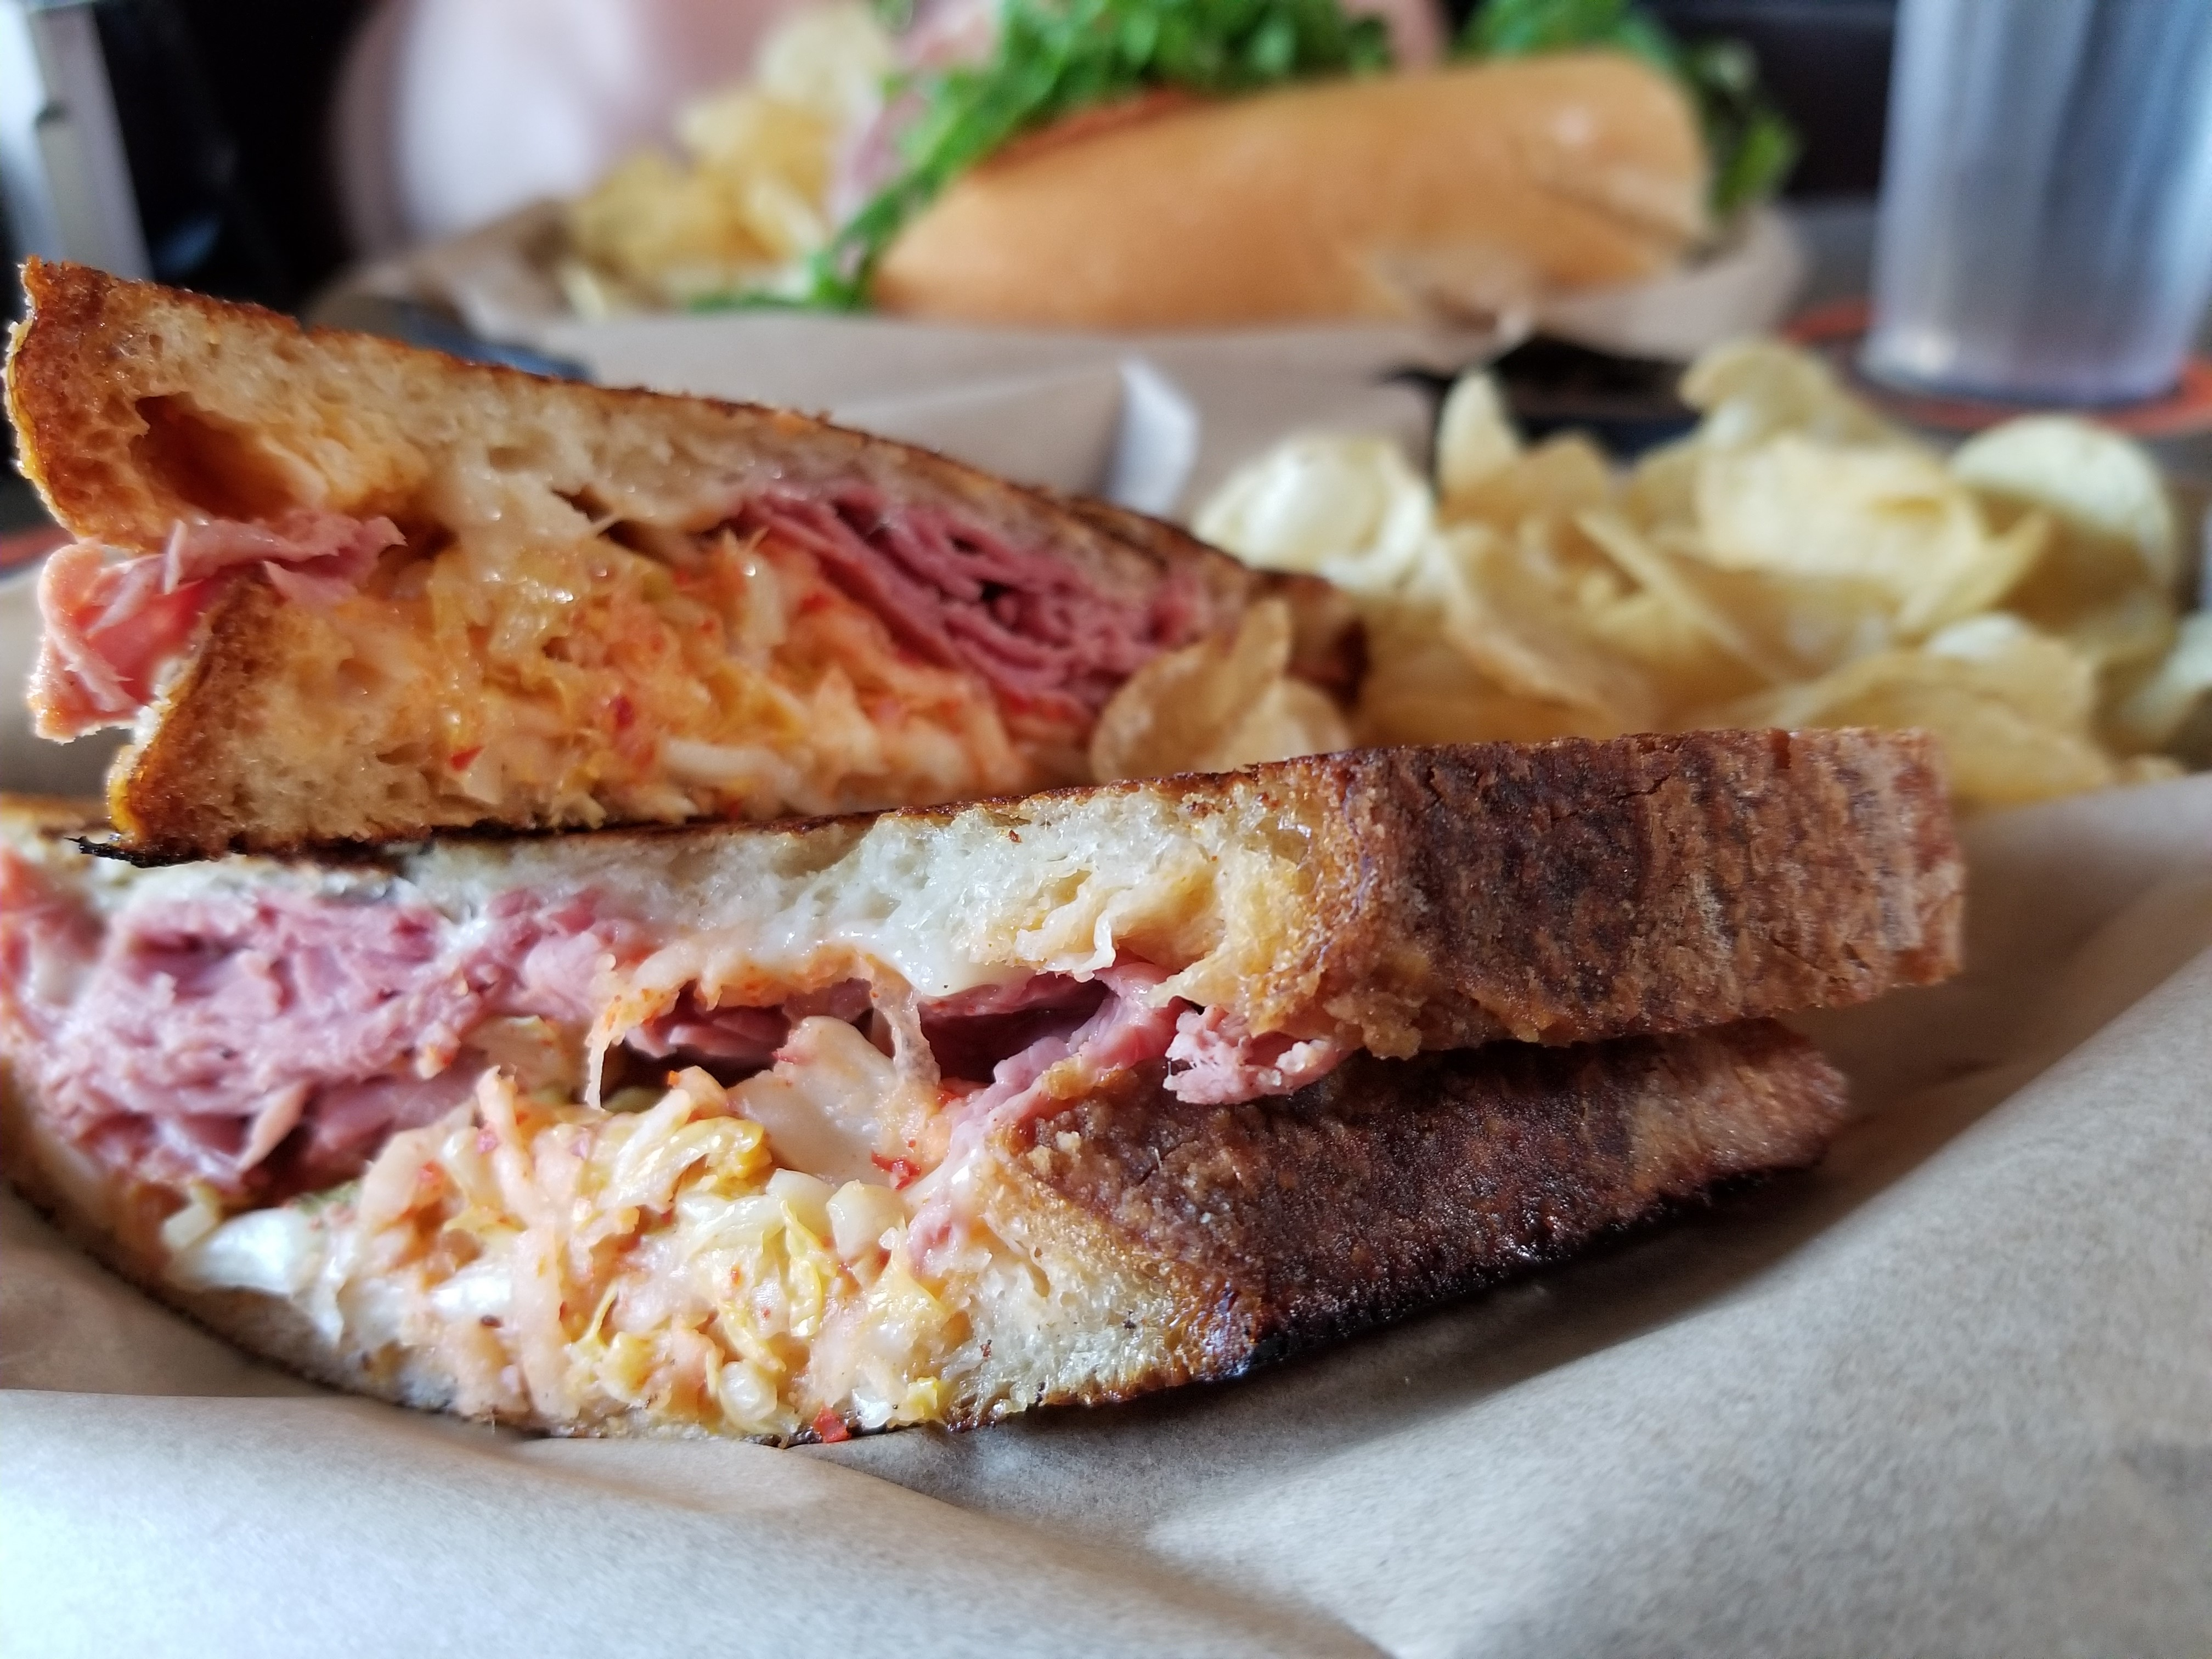 The Korean Reuben at Docent Brewing is one of many creative sandwich offerings at Docent Brewing in San Juan Capistrano. Photo: Alex Groves